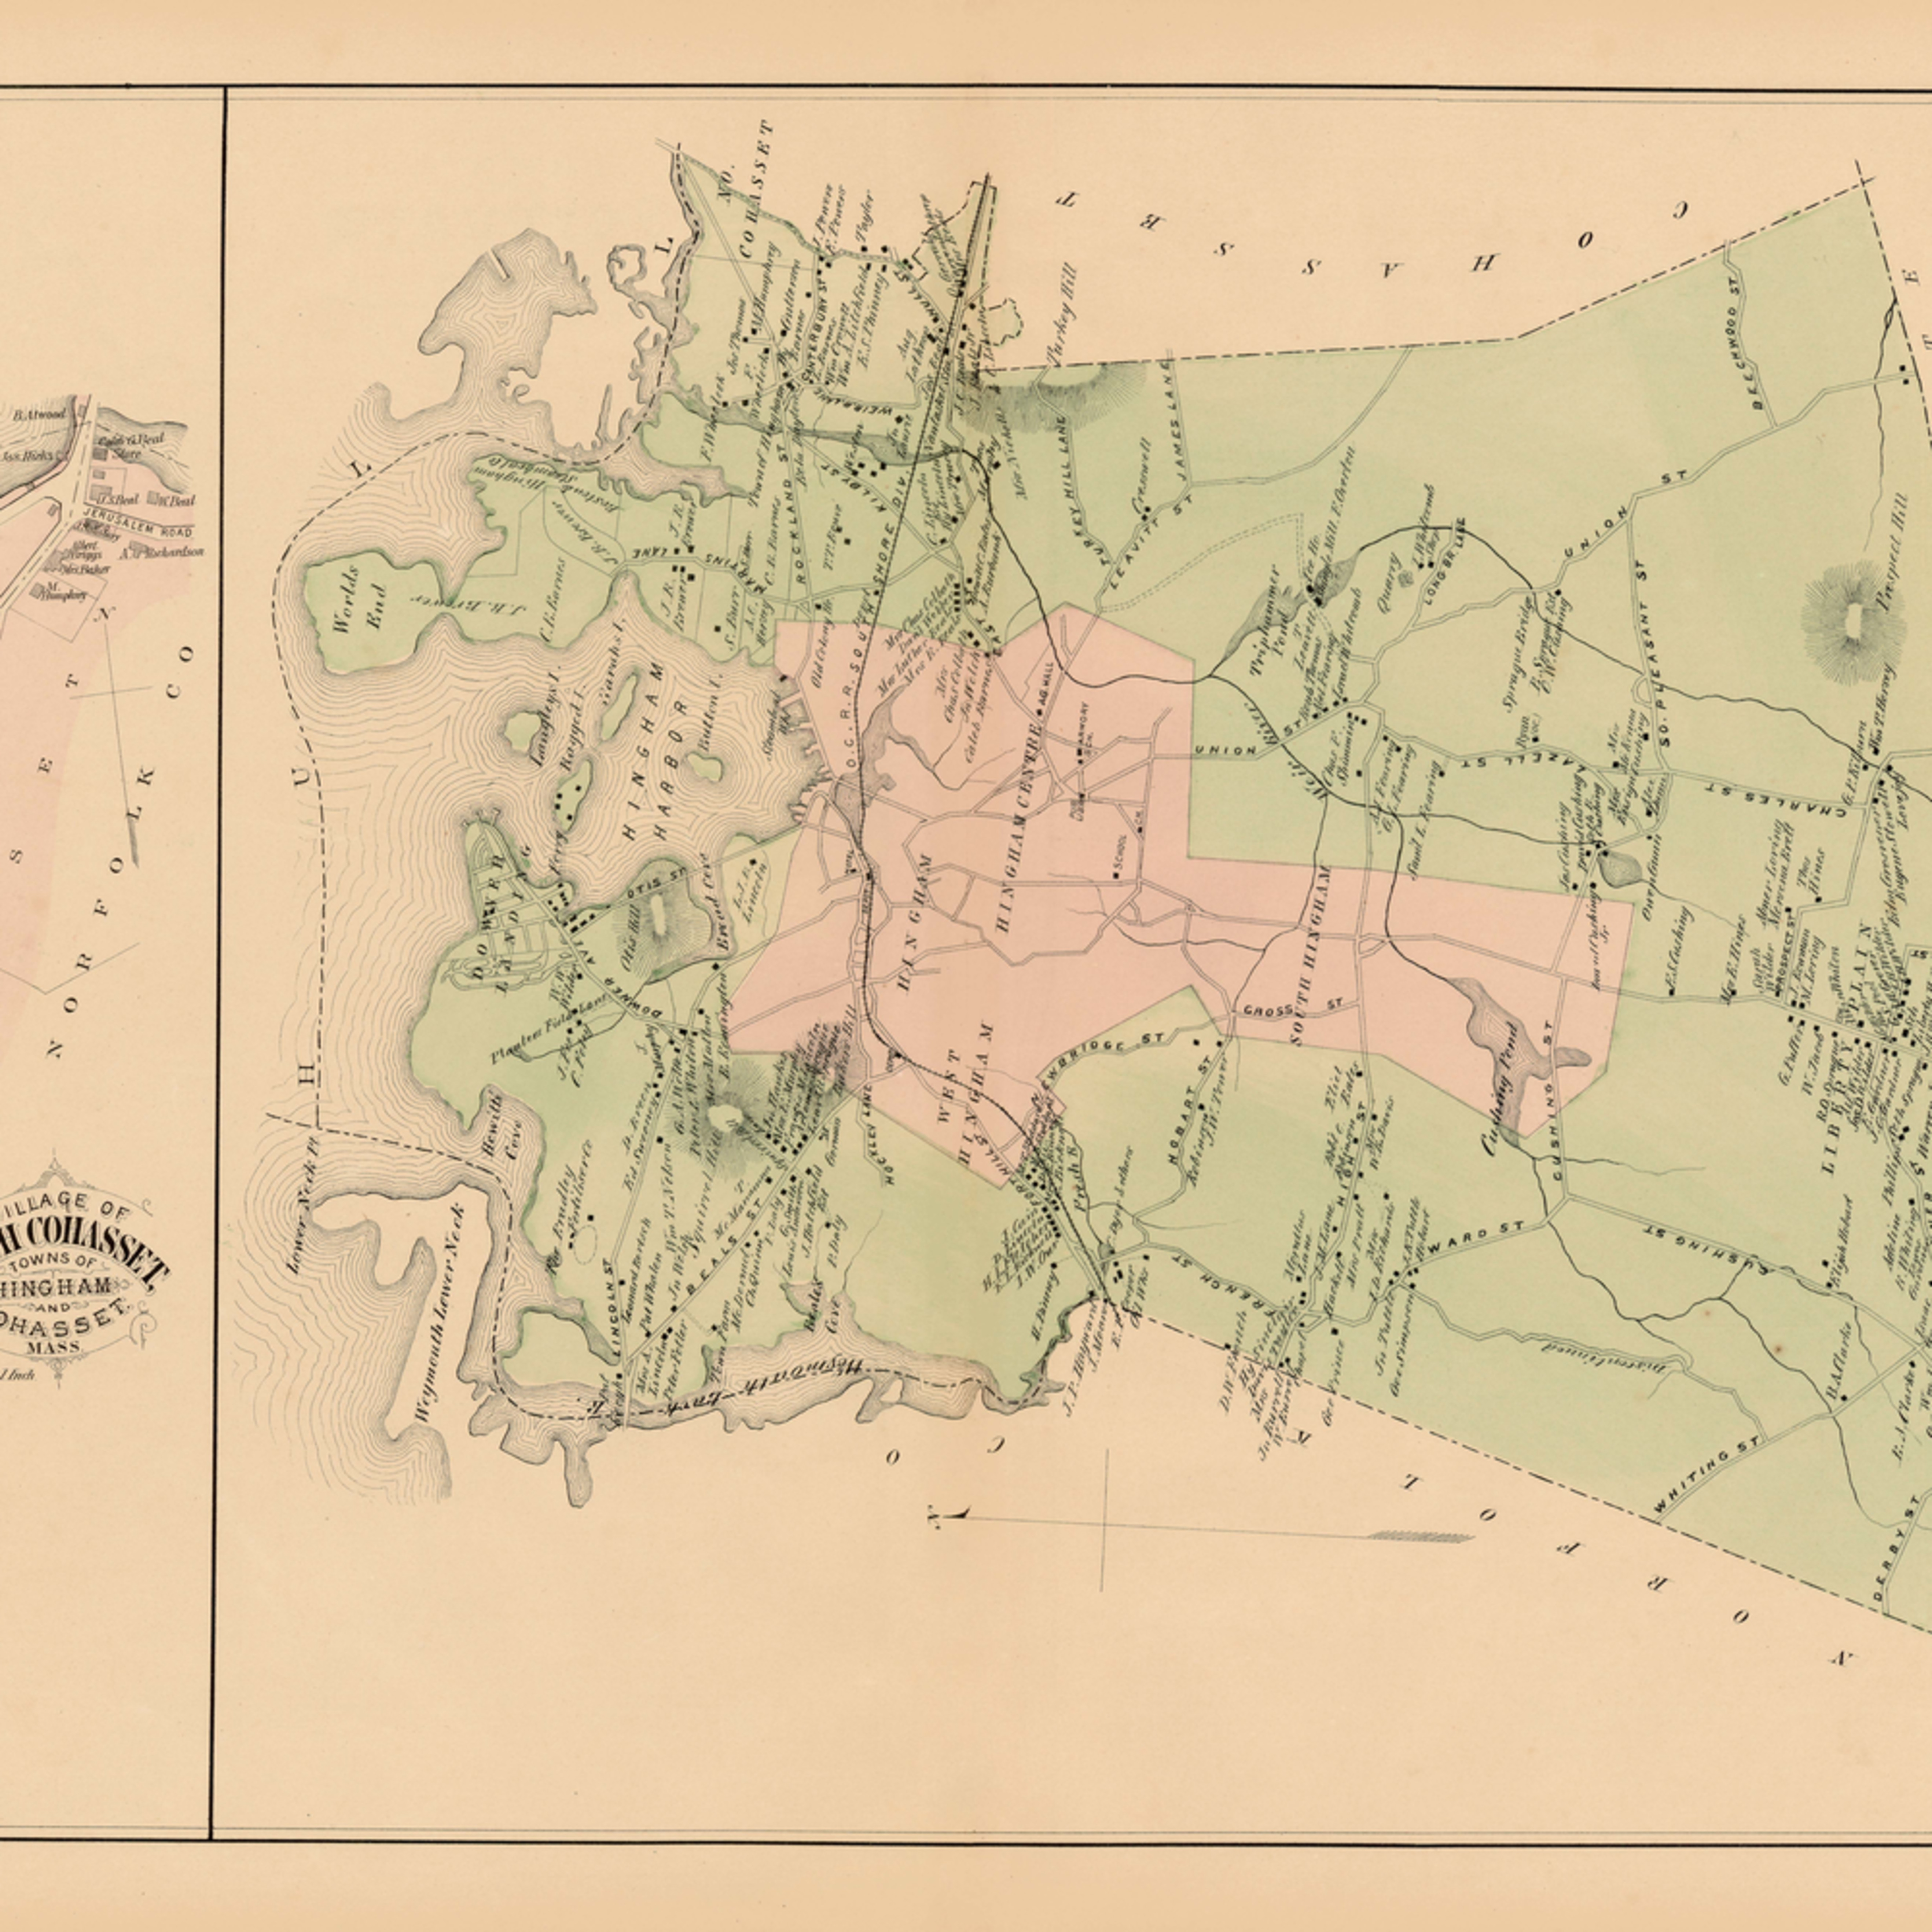 026 p79 higham town north cohasset village1879plate34 35 17.5x28 32 qcrgxr